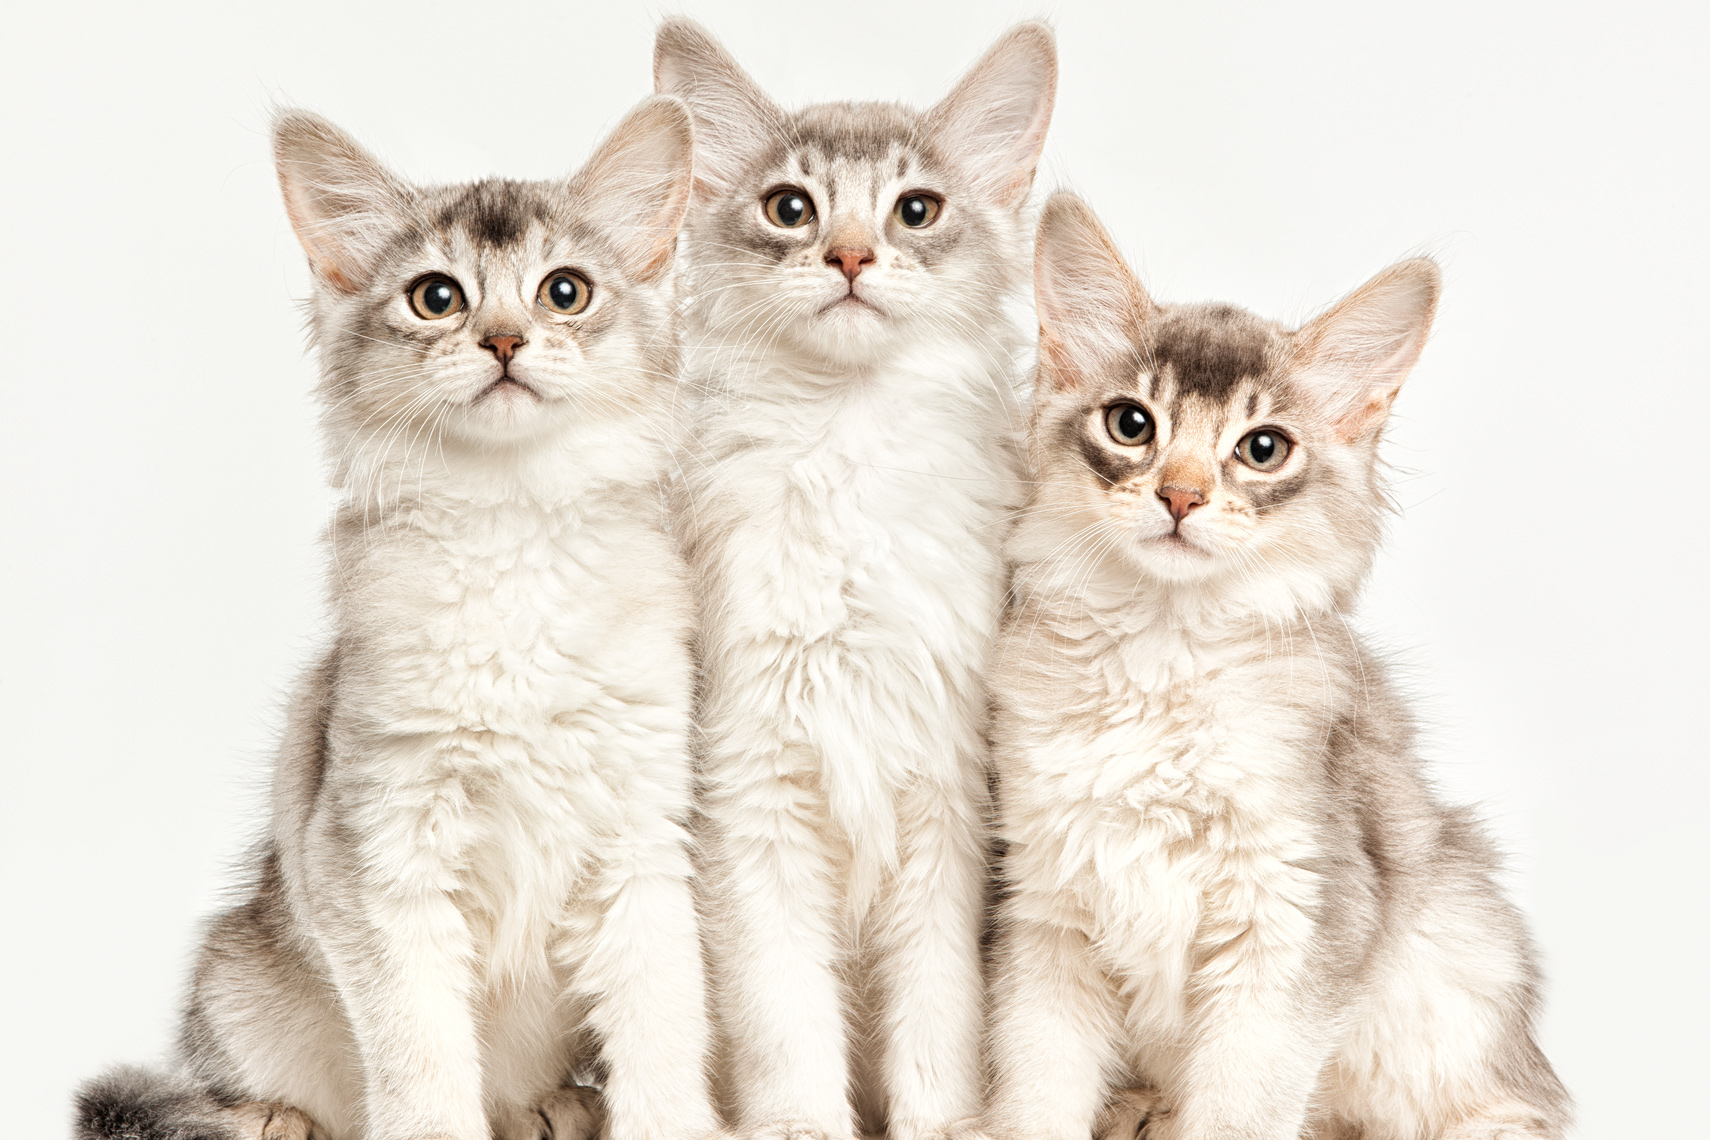 Los Angeles Cat Photography, Michael Brian, pet, dog, Three kittens sitting side by side, Studio portrait